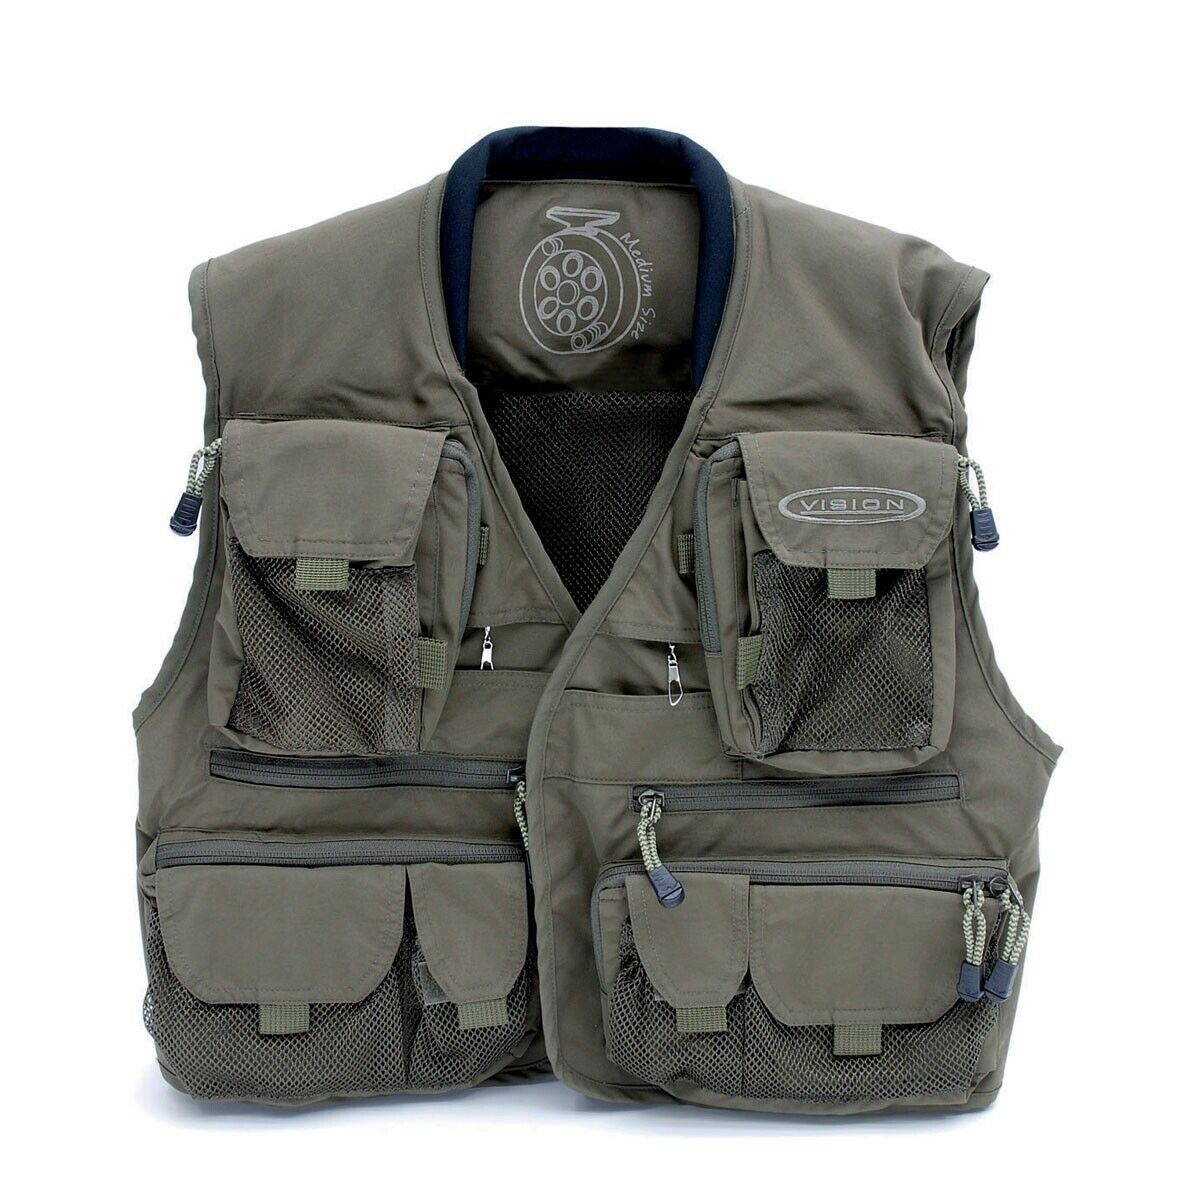 VISION autoibù Fly Fishing Vest Vest Vest Medium d41